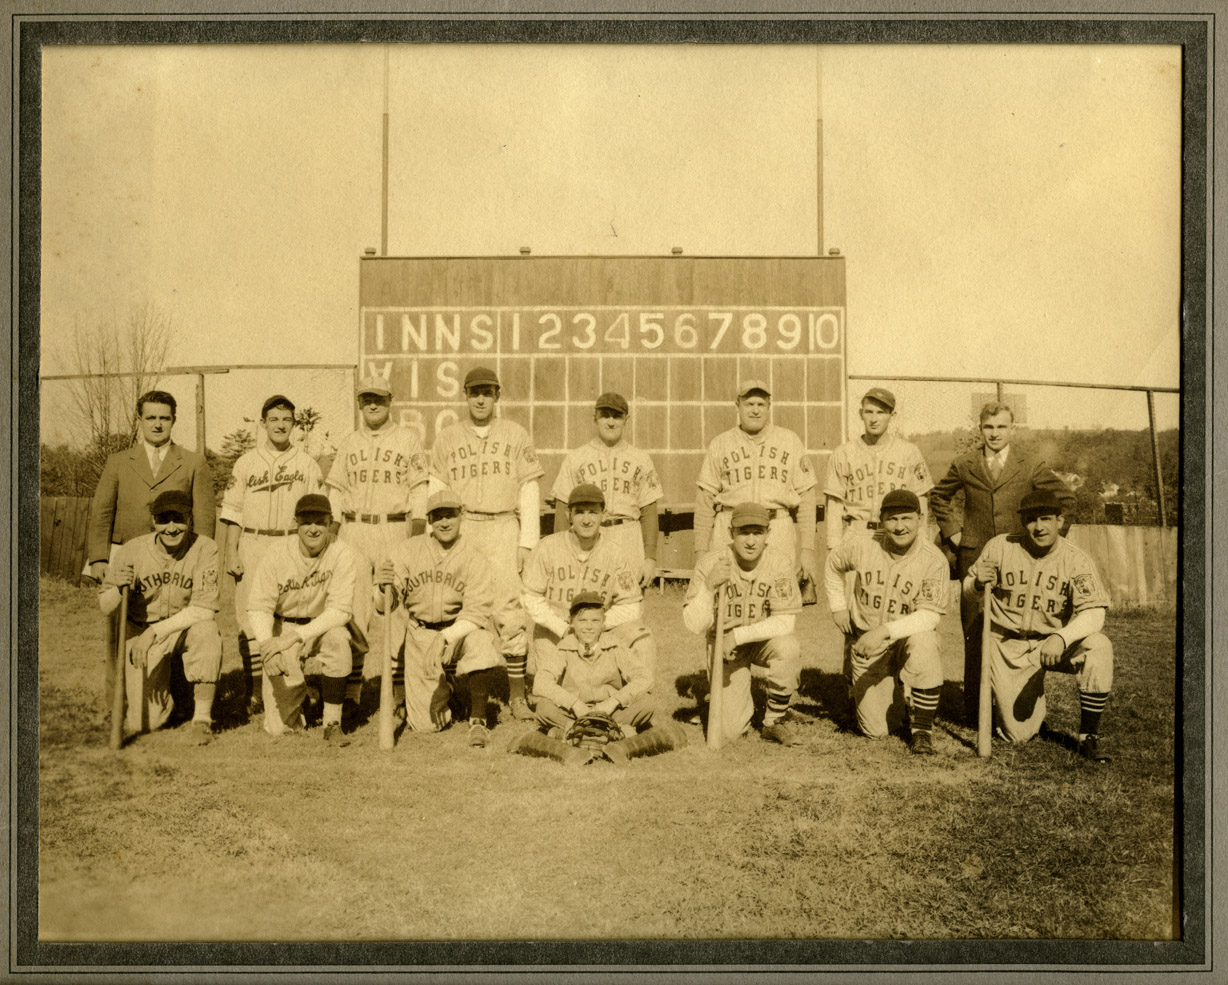 Image of Polish Tigers baseball team, ca.1935